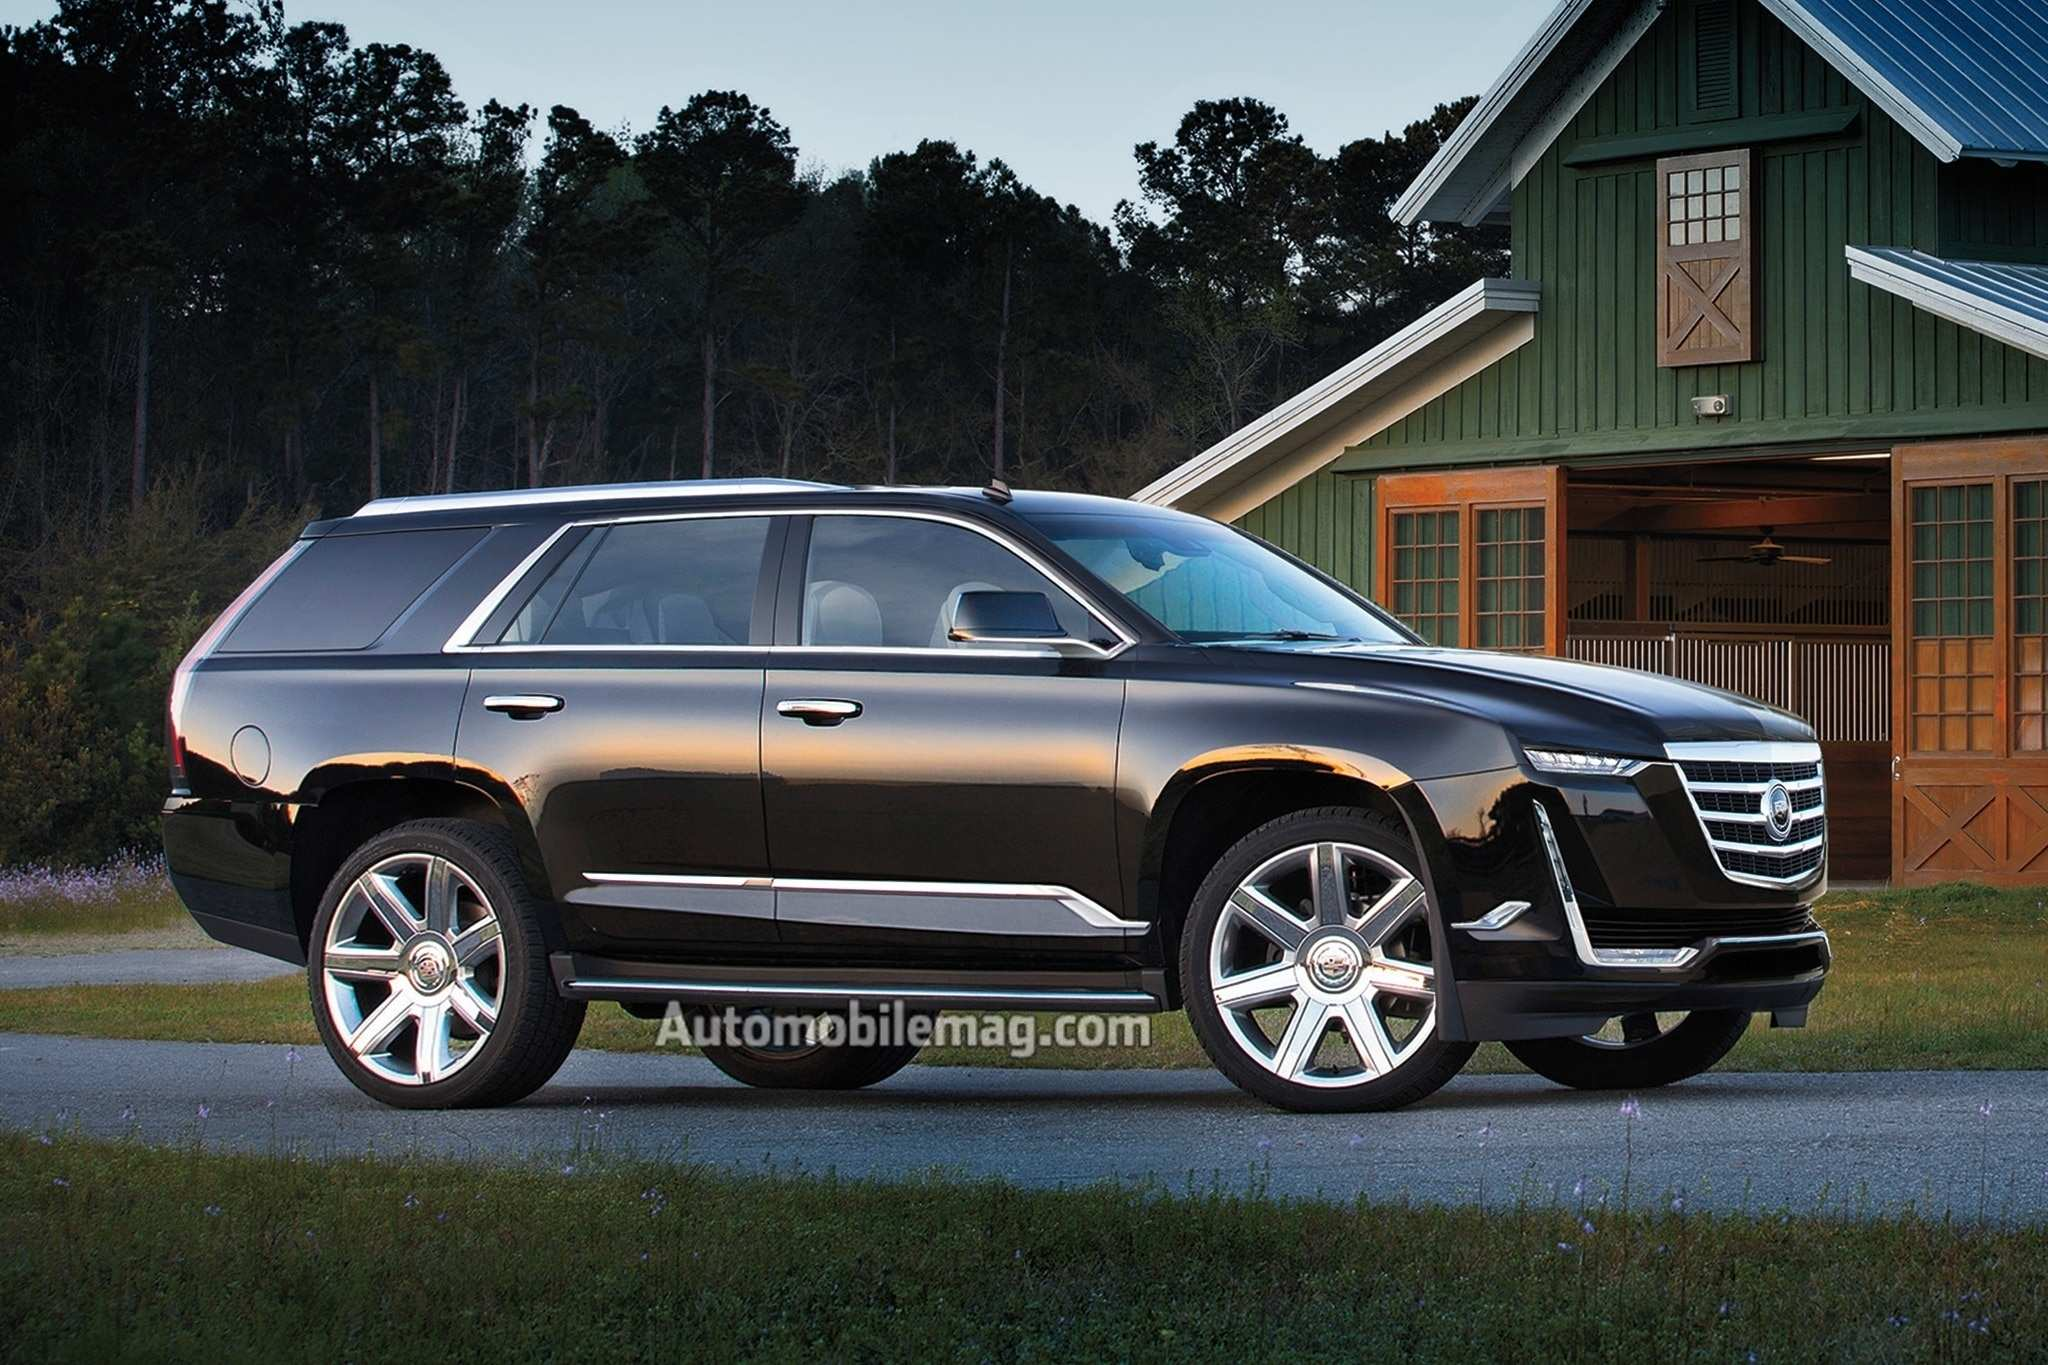 53 The Best GMC Yukon 2020 Release Date Price And Review